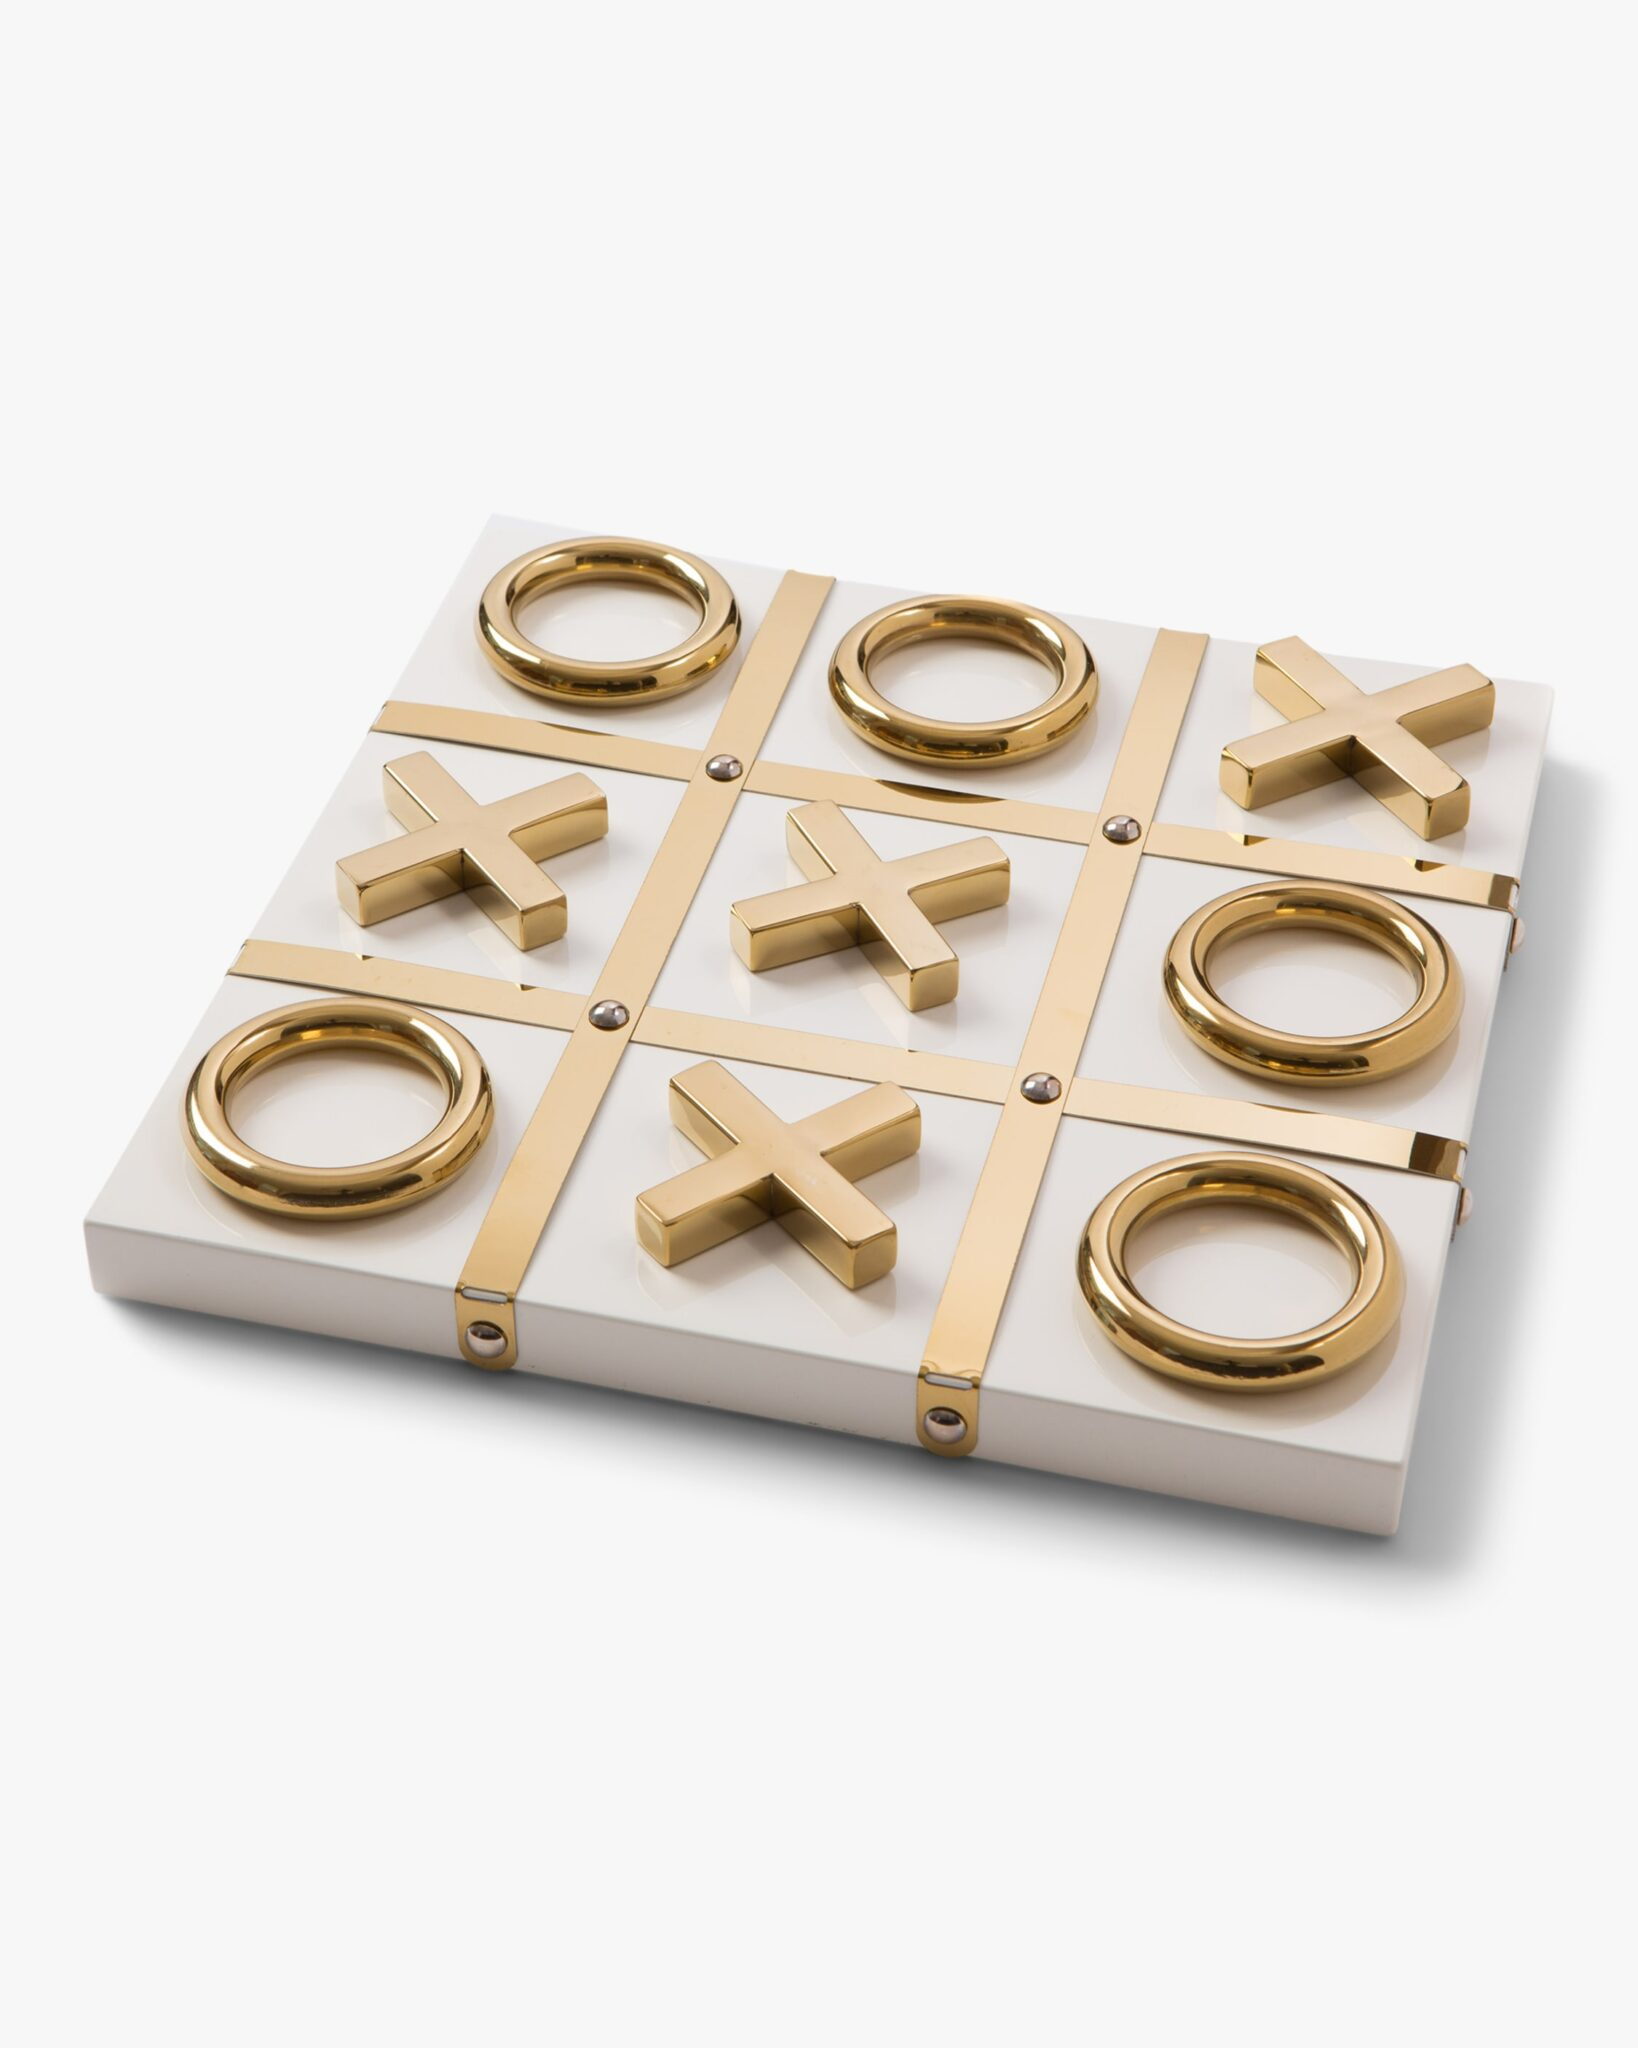 Aurosi Goldtone Tic-Tac-Toe Set $175.00